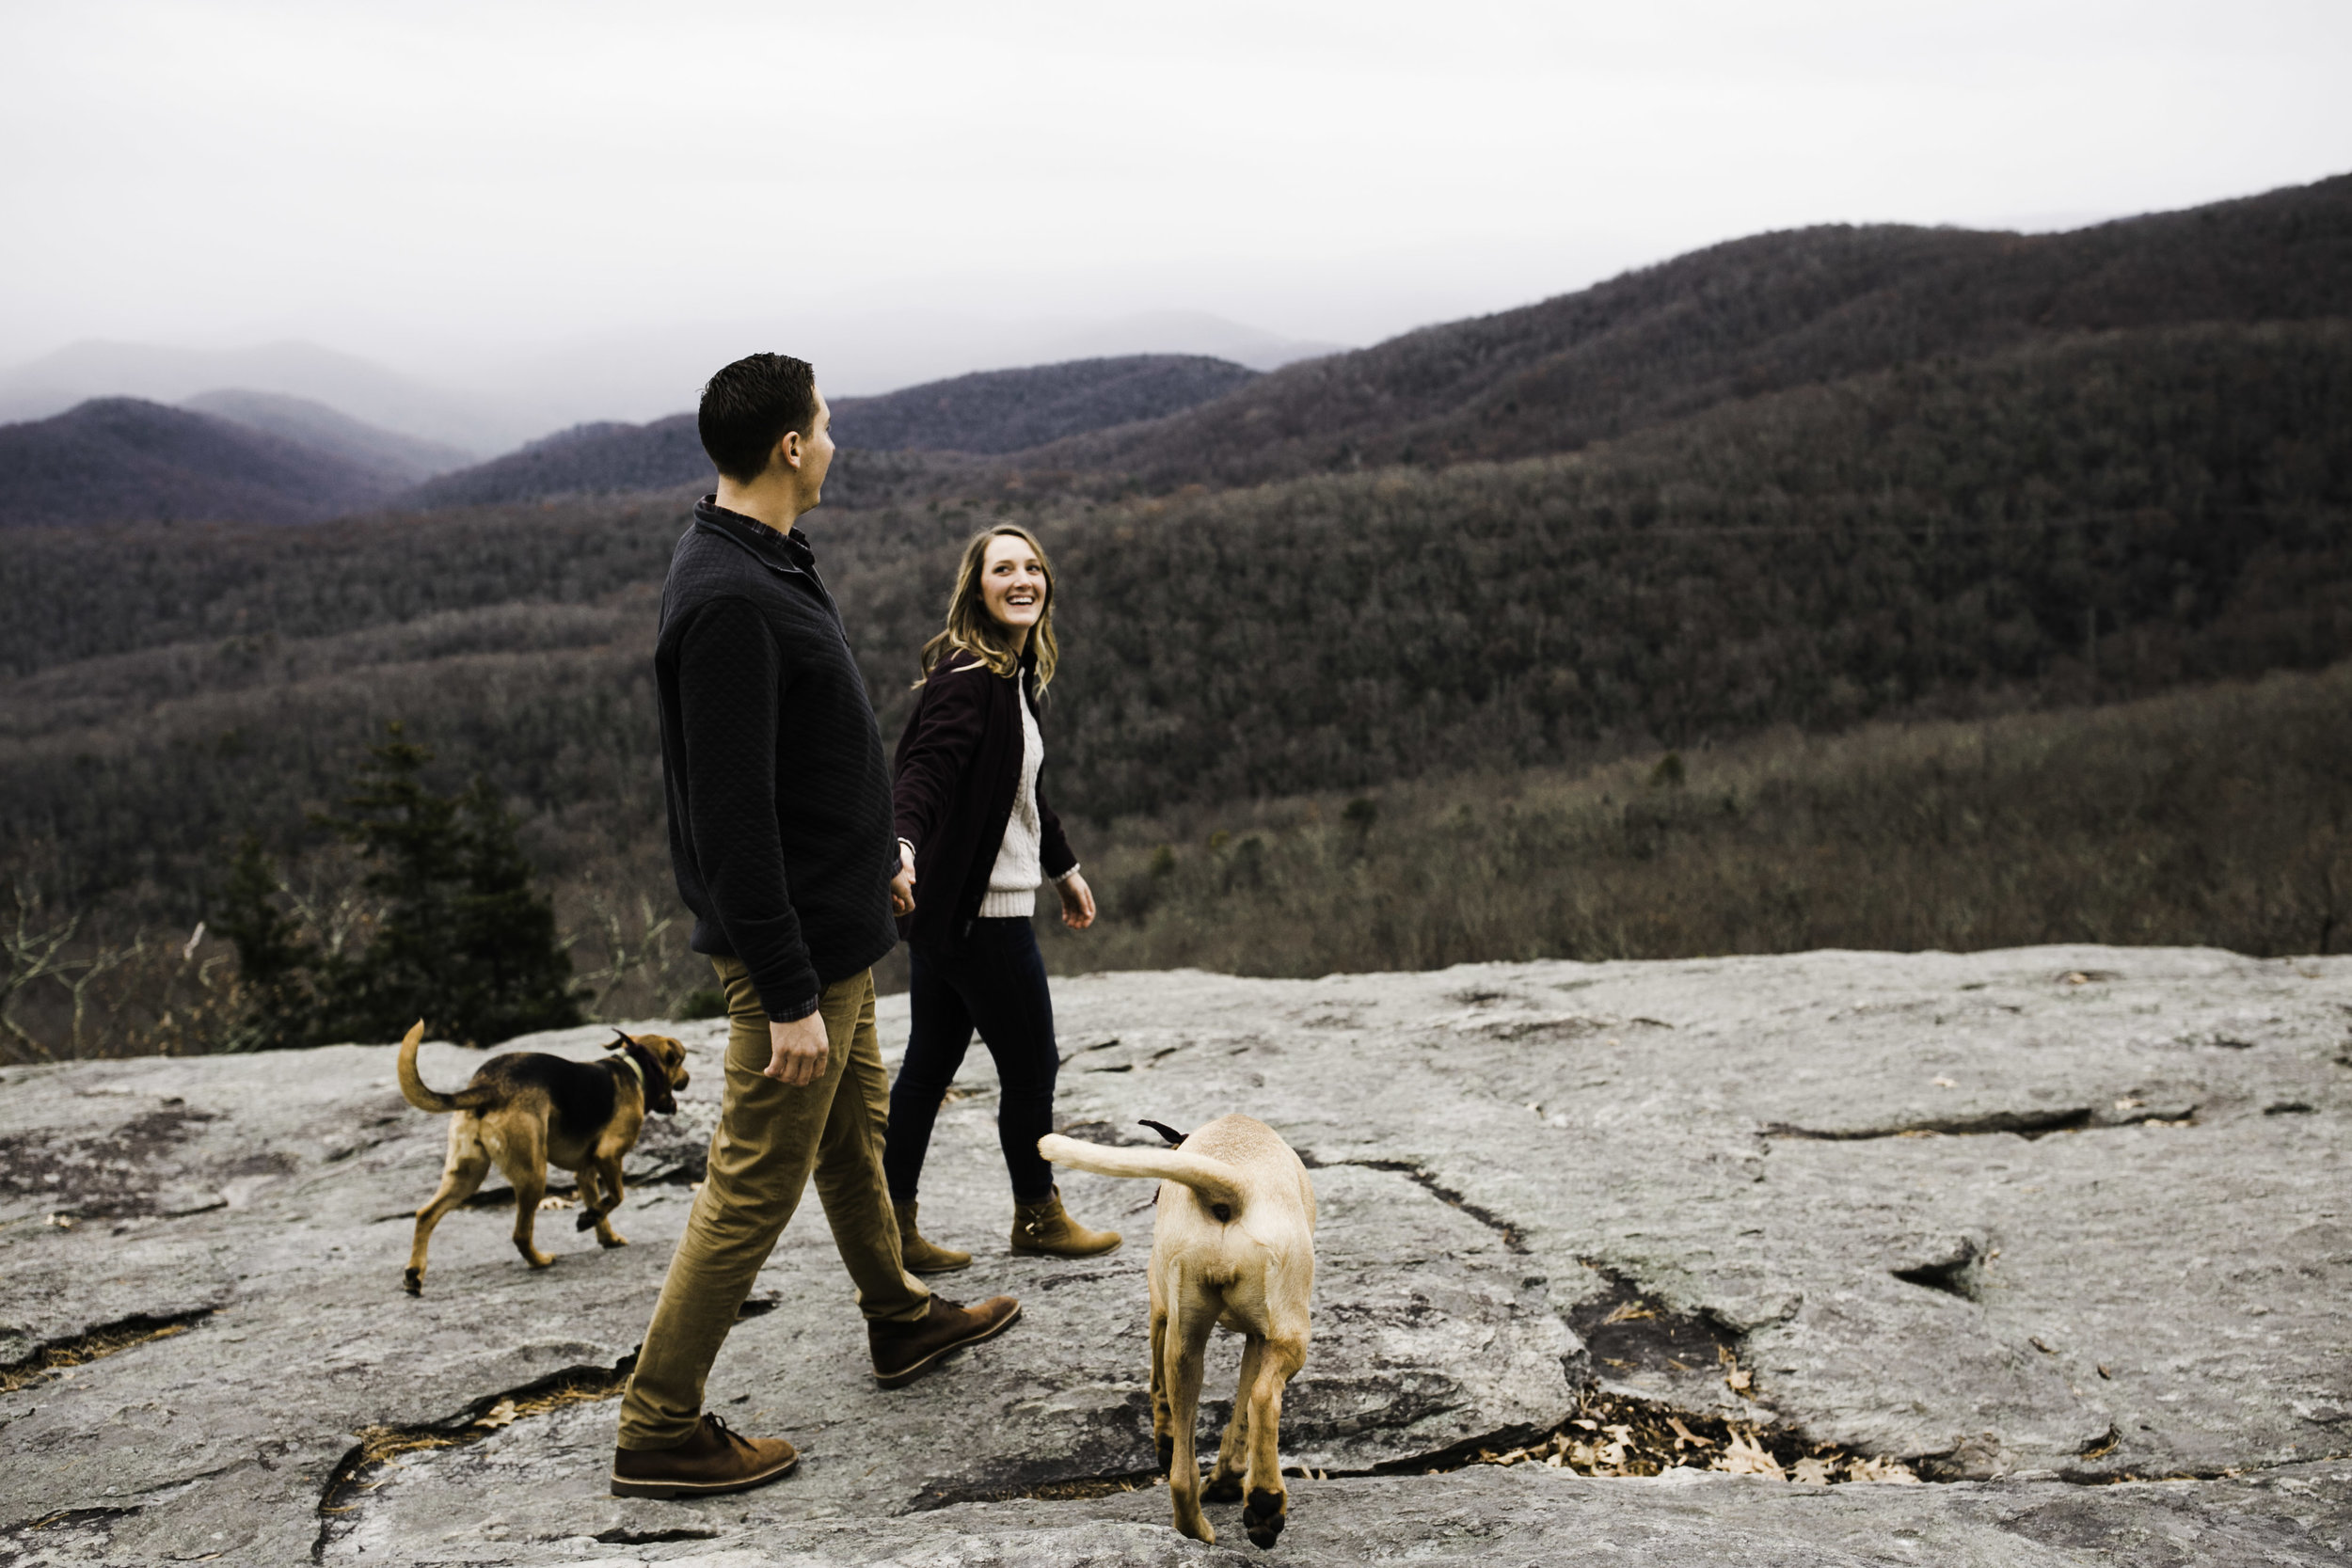 Blue Ridge Parkway, dogs anniversary session, Asheville, Boone, mountains, North Carolina, West Virginia wedding photographer, adventure session, couples session, outdoor adventure, intimate, bold, artistic photography, Charleston West Virginia Wedding Photographer